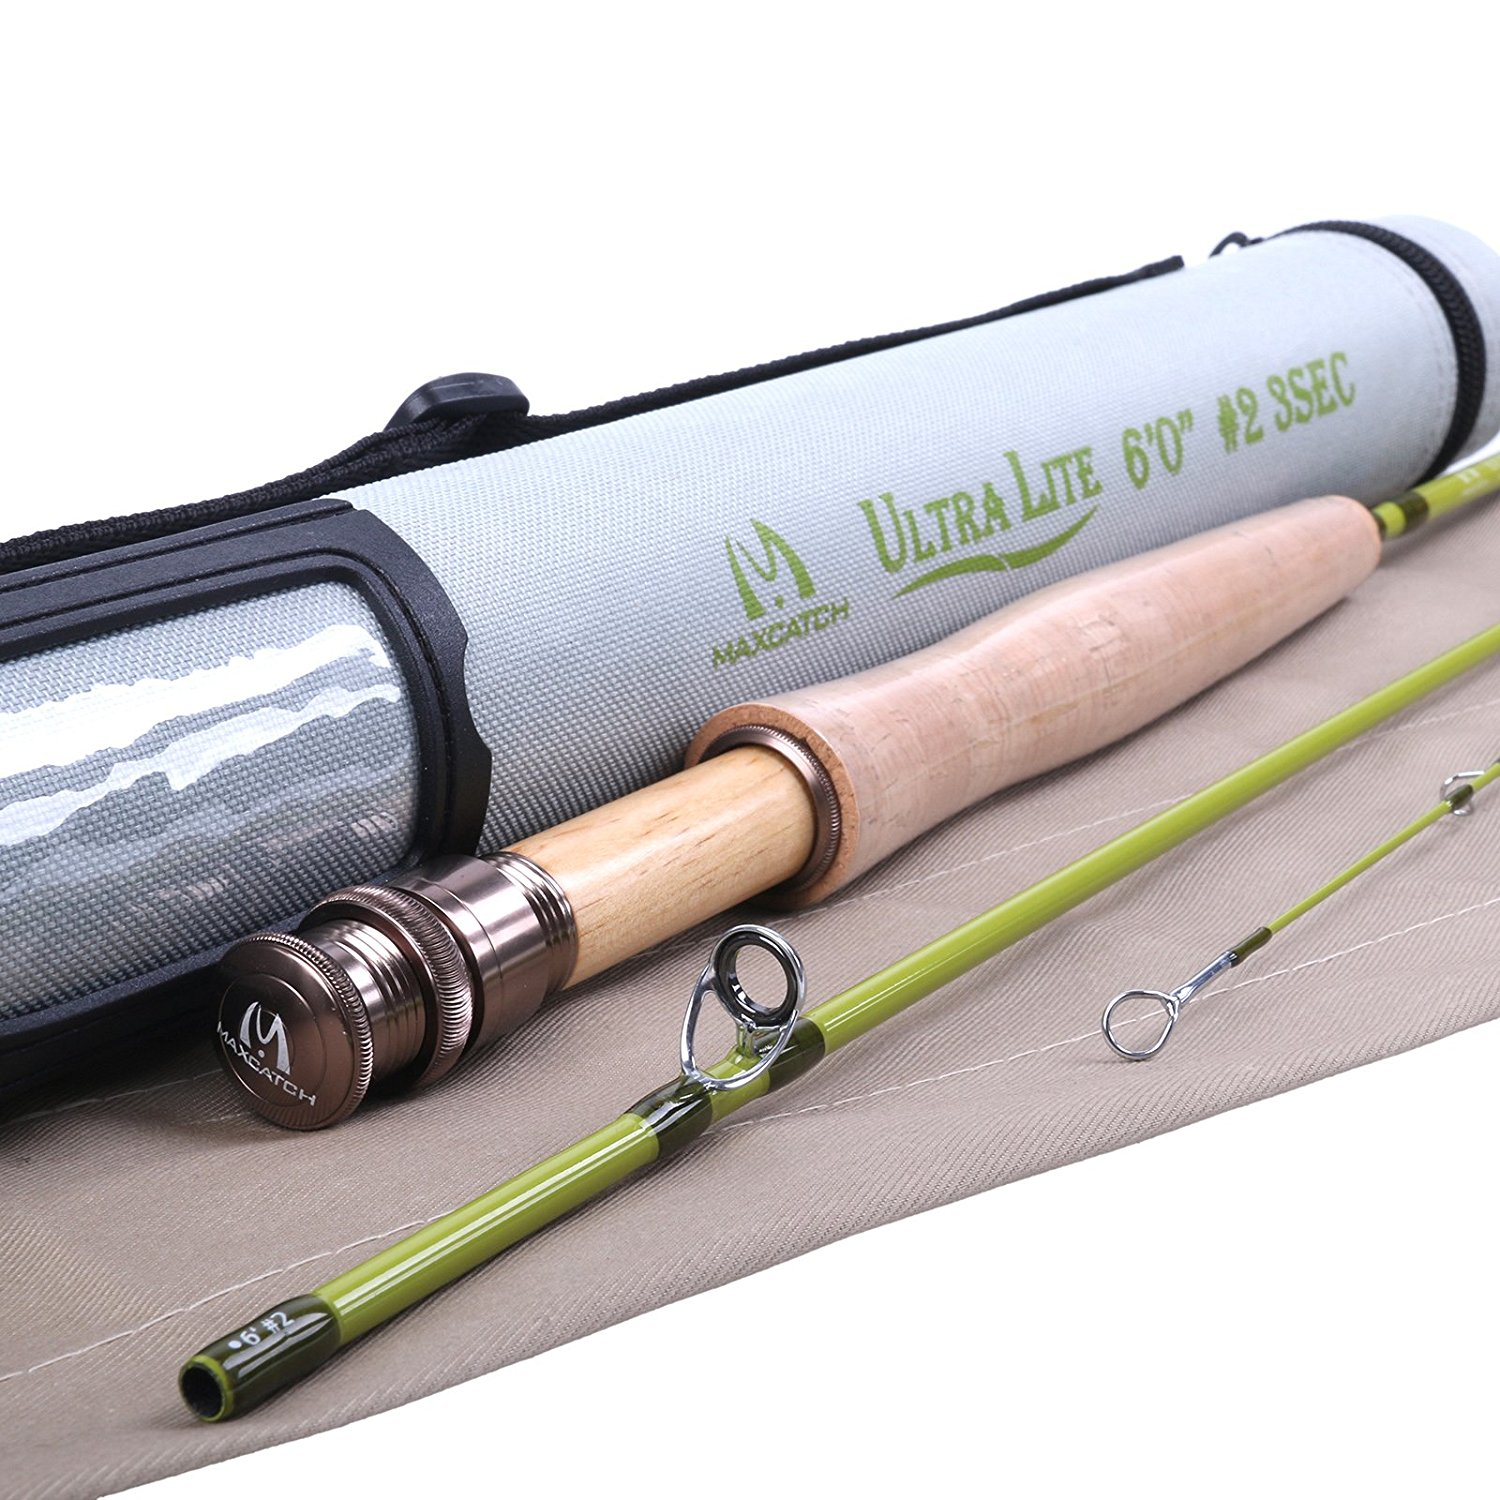 Maxcatch Ultra-lite Fly Rod